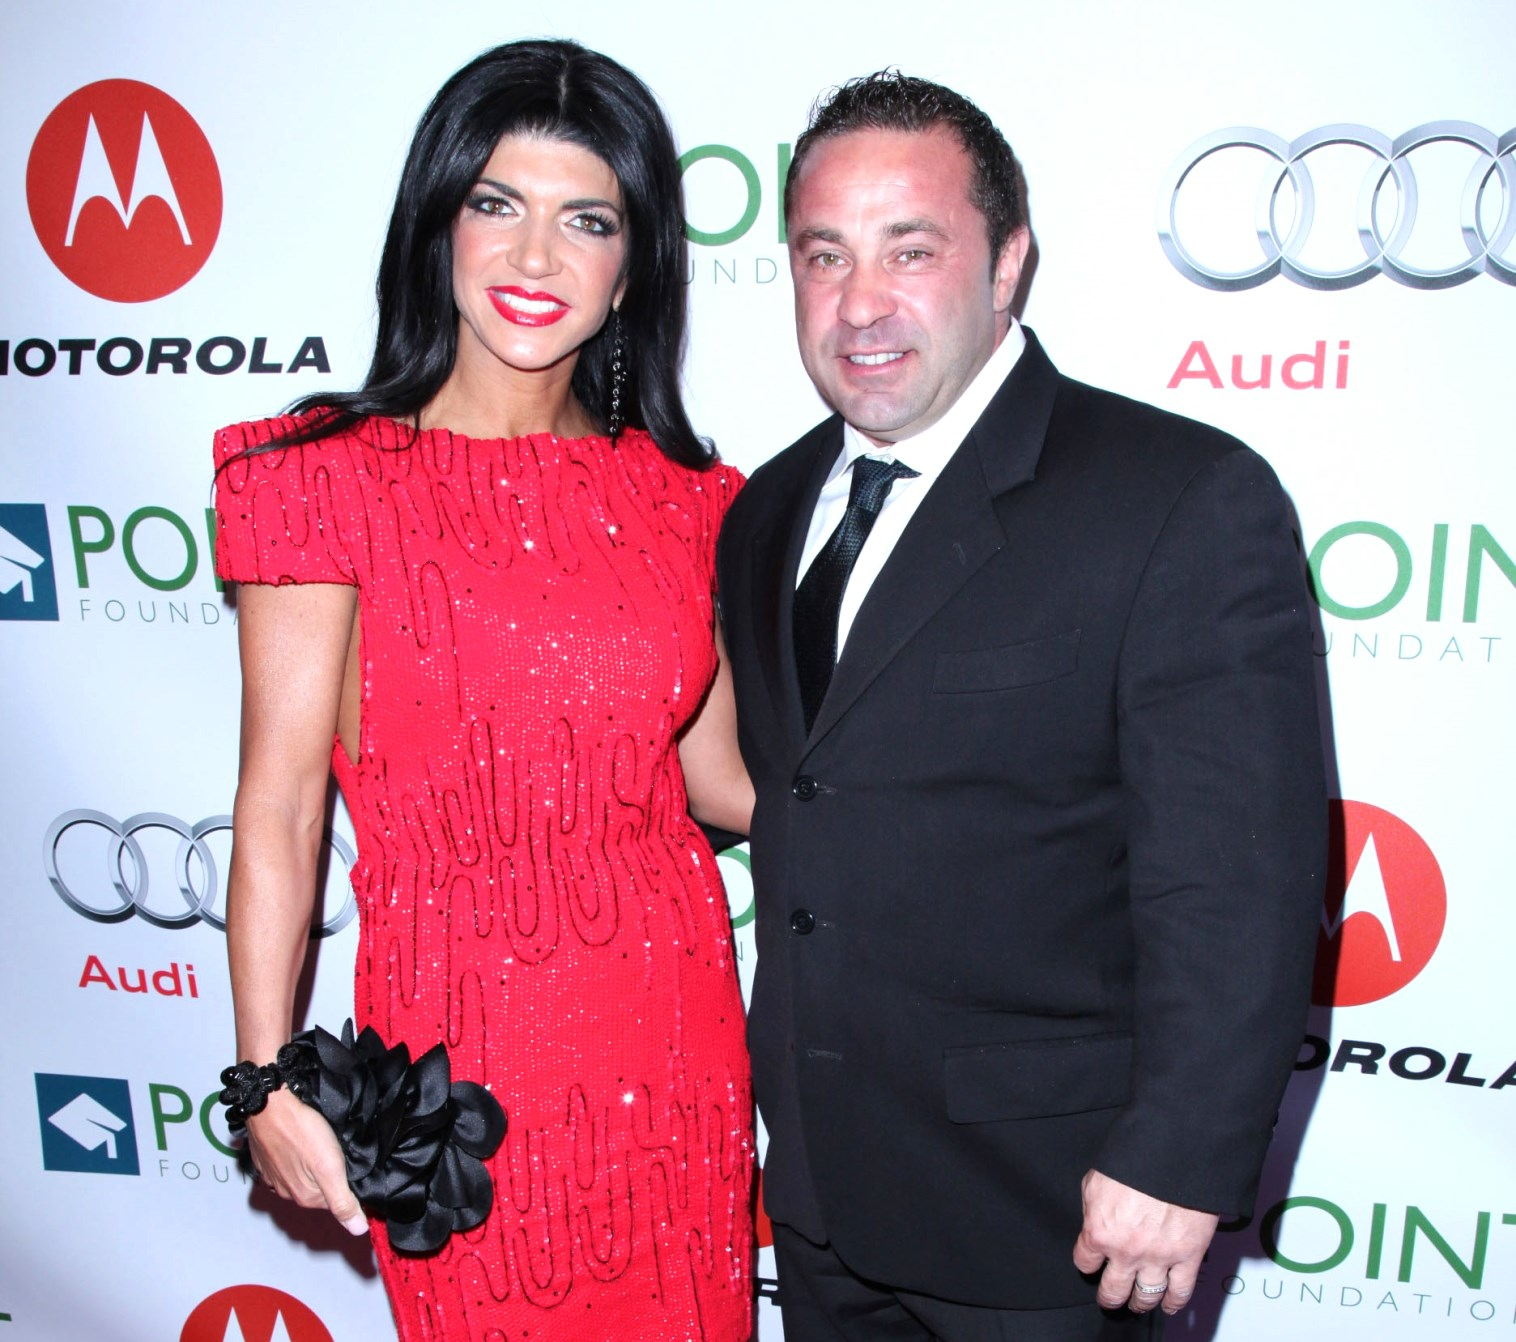 RHONJ Teresa Giudice and Joe Giudice Deportation